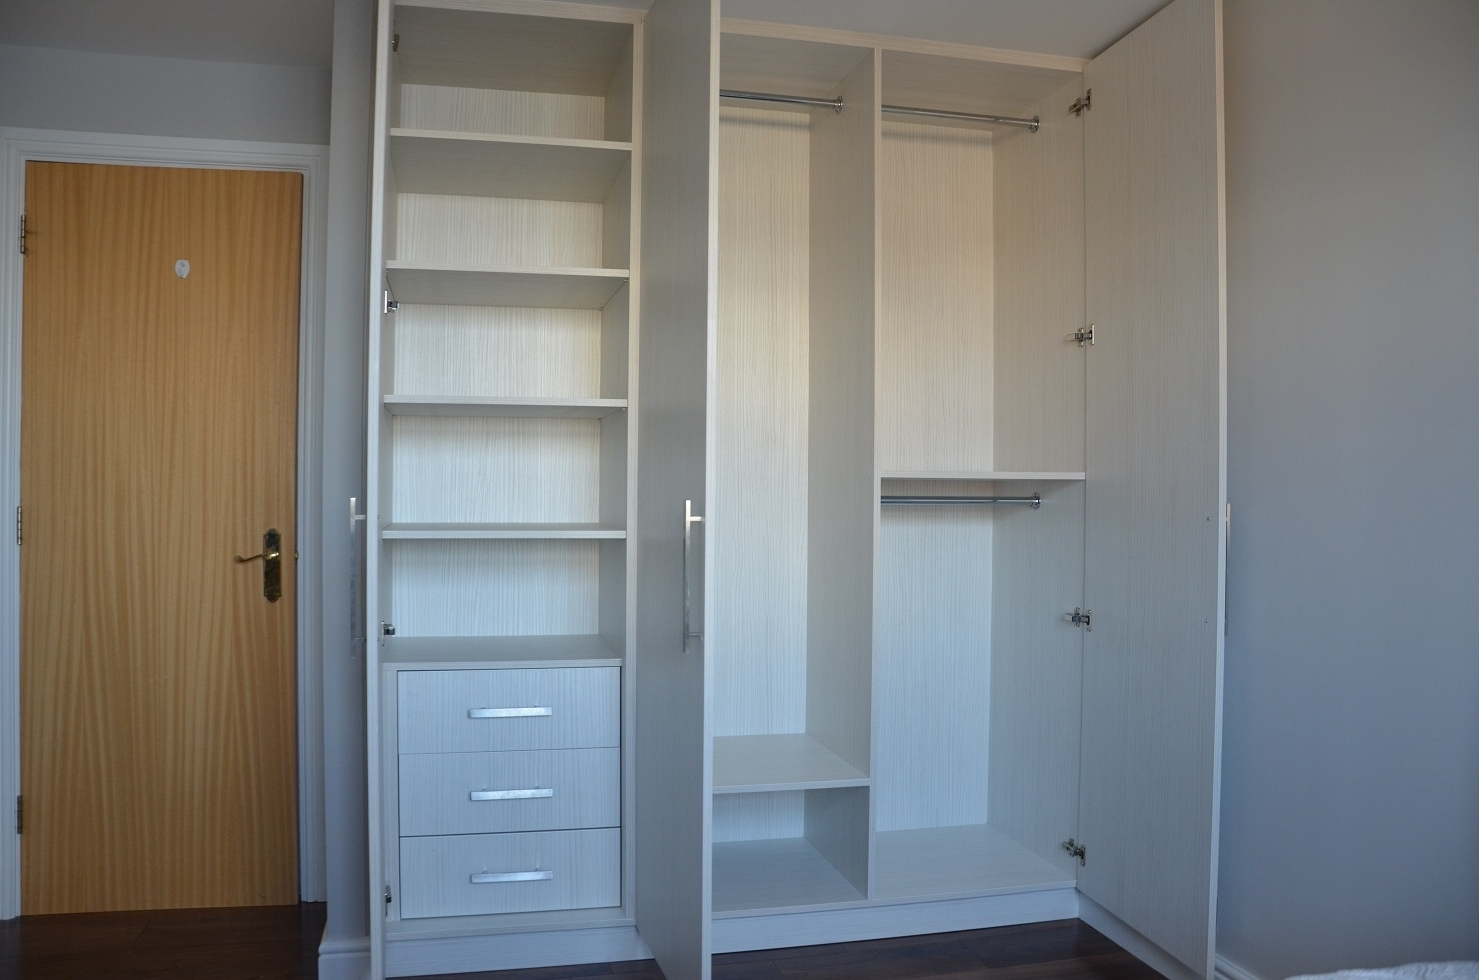 Trendy Hacienda White 3 Doors, Canary Wharf E14 In 3 Door Wardrobes With Drawers And Shelves (View 14 of 15)